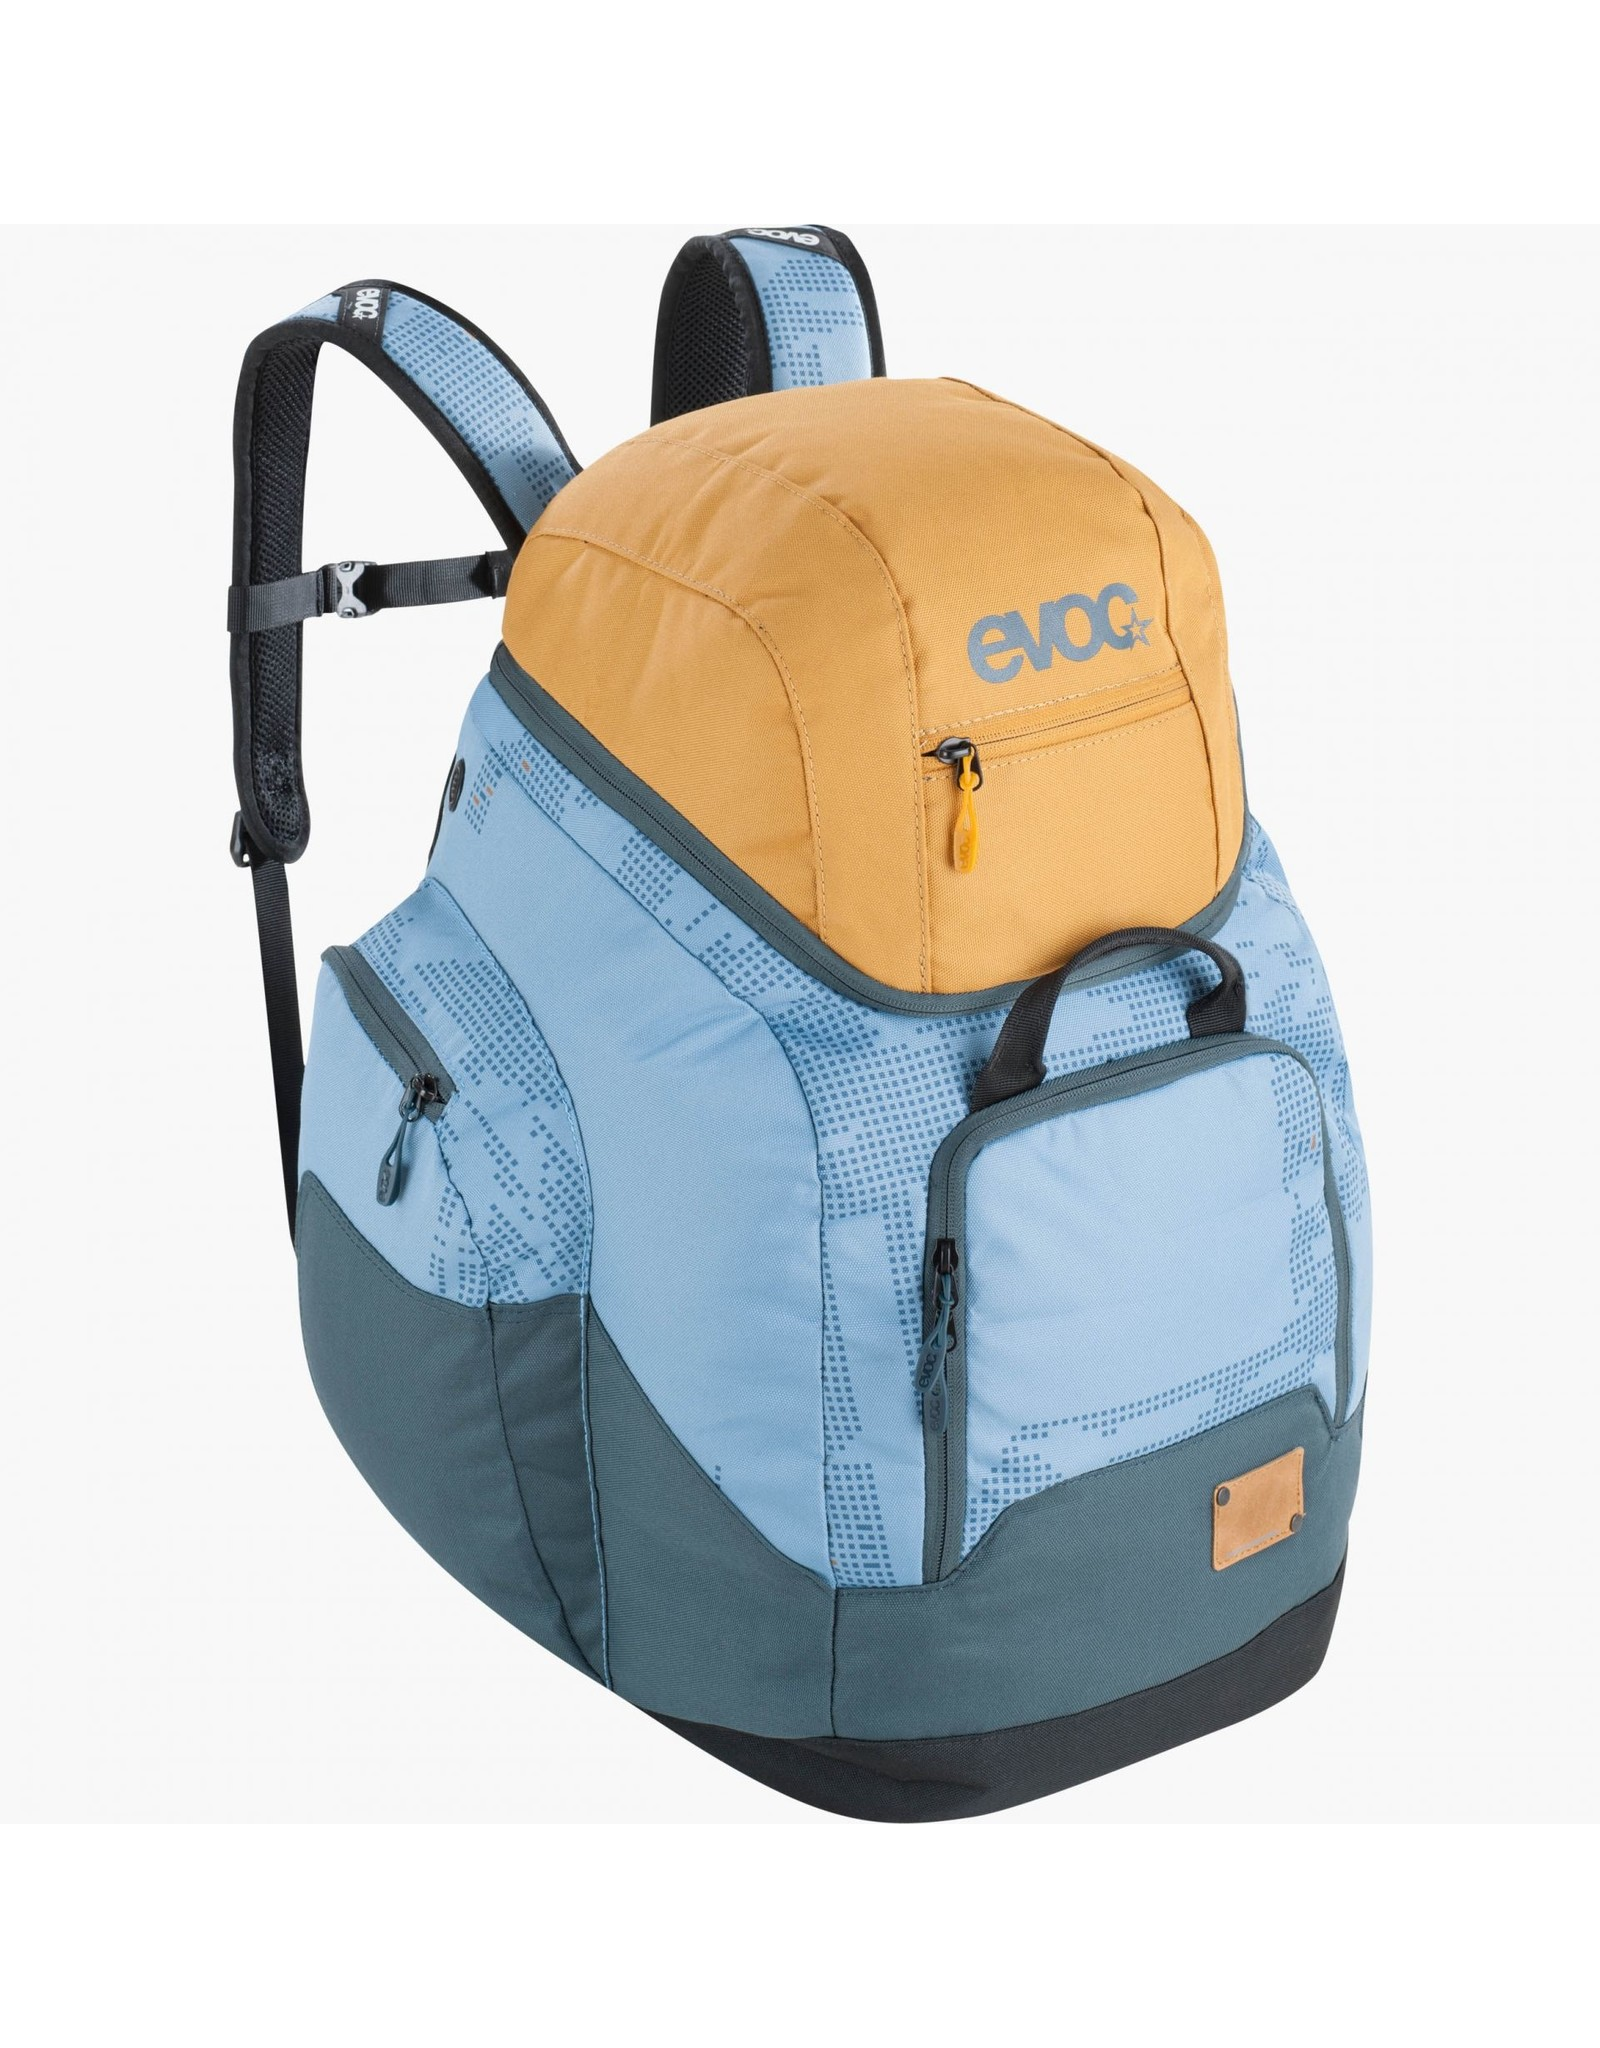 EVOC EVOC, Boot & Helmet Backpack, 60L, Multicolour